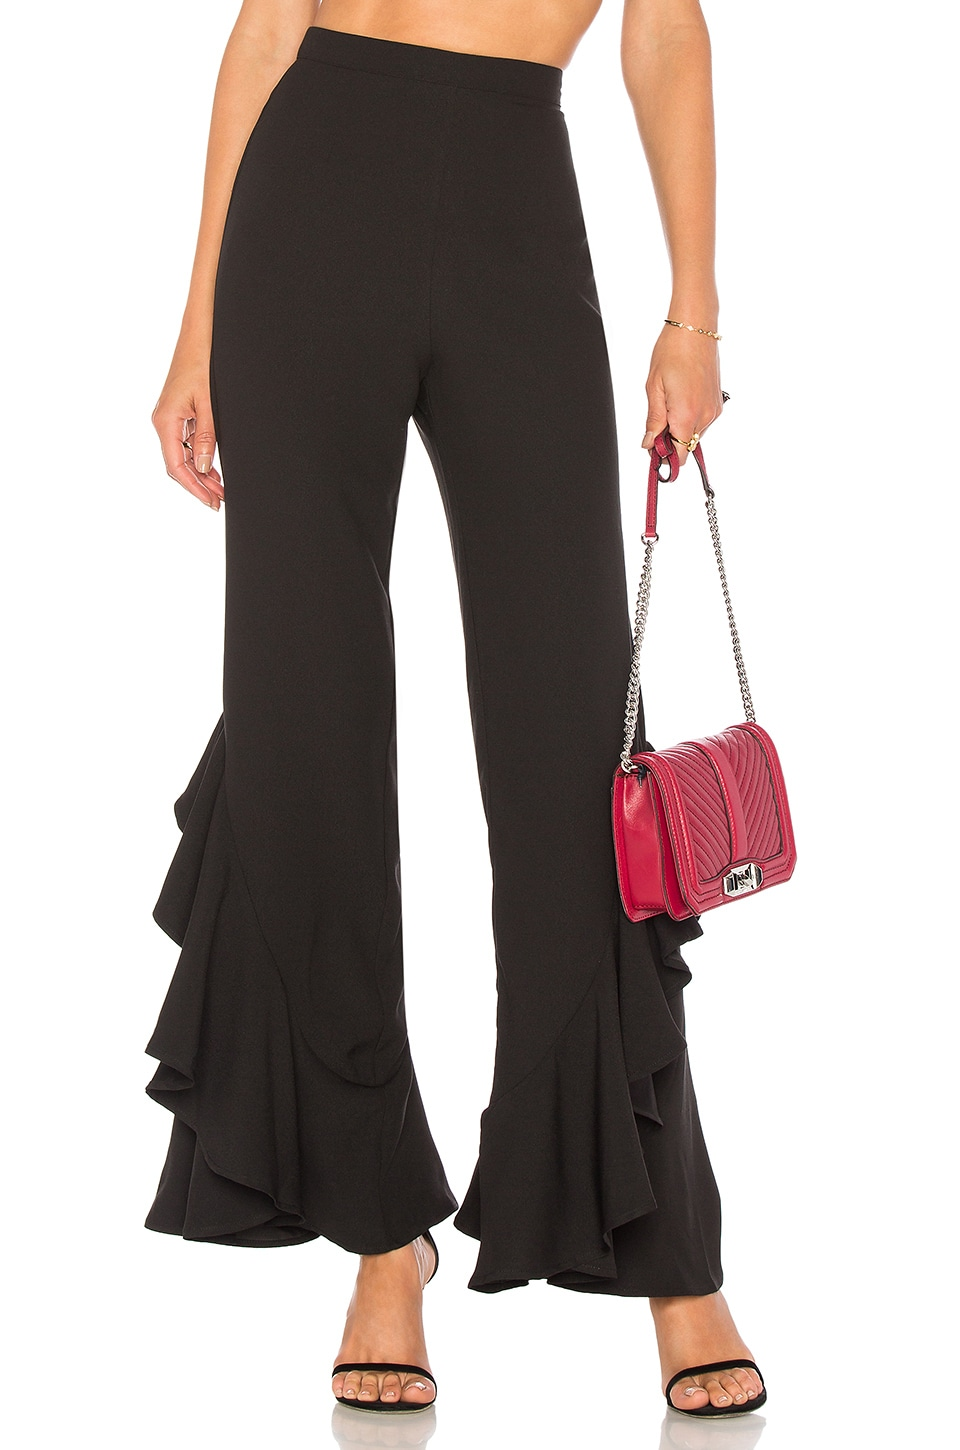 Lovers + Friends x REVOLVE Carmelita Flares in Black